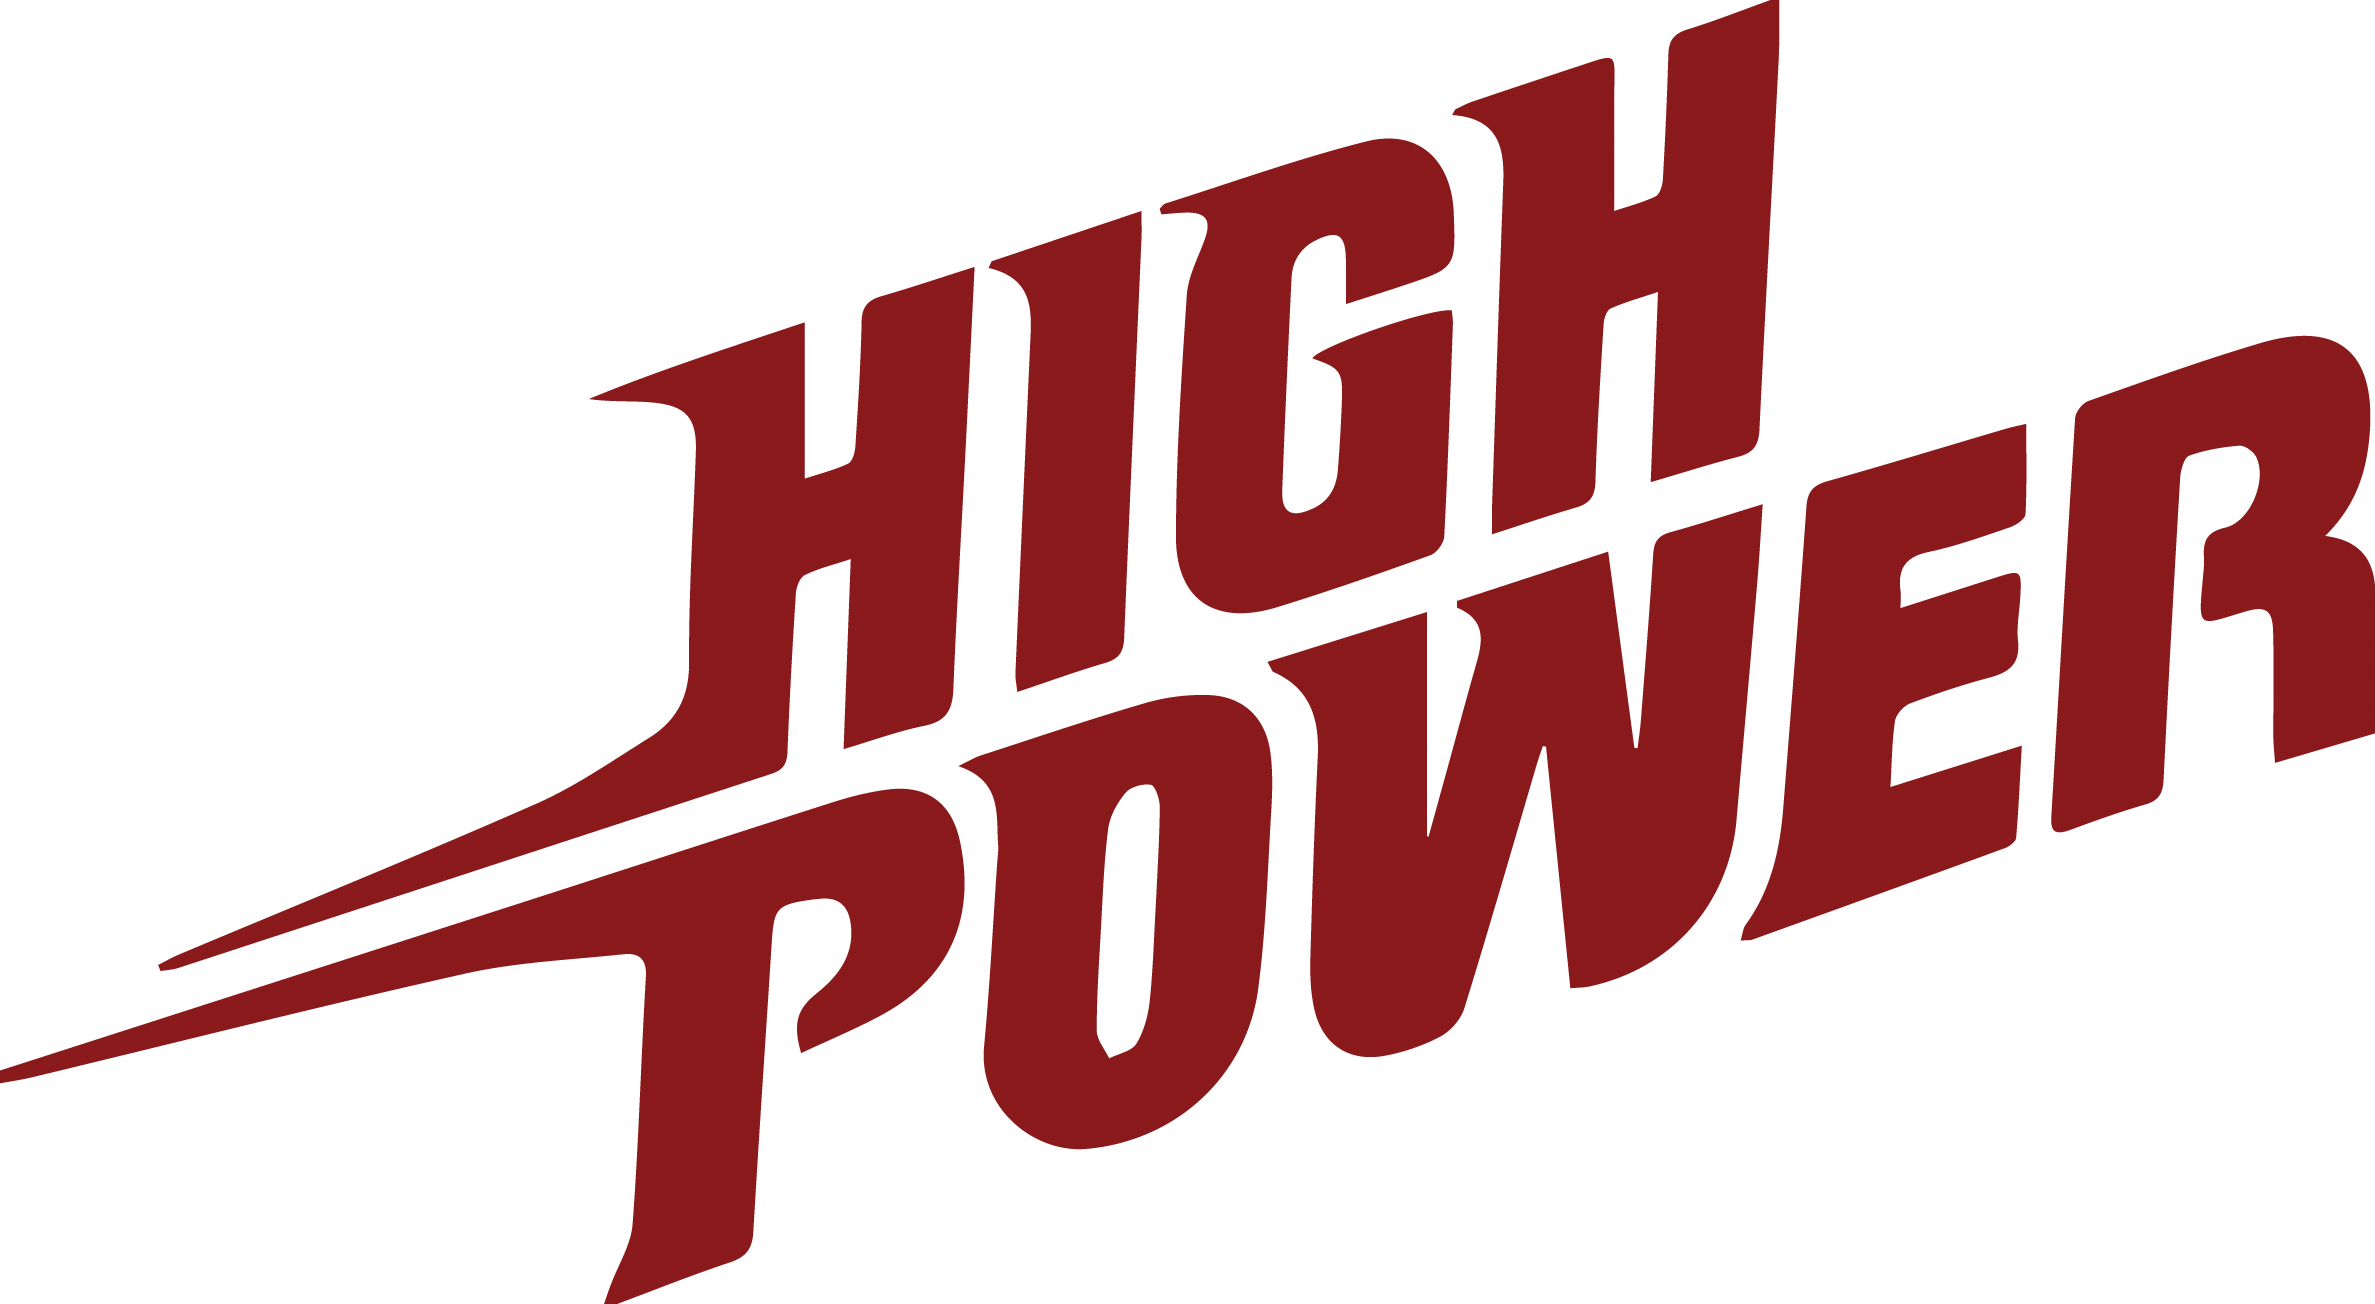 download high power sports high power logo full size png image pngkit high power sports high power logo